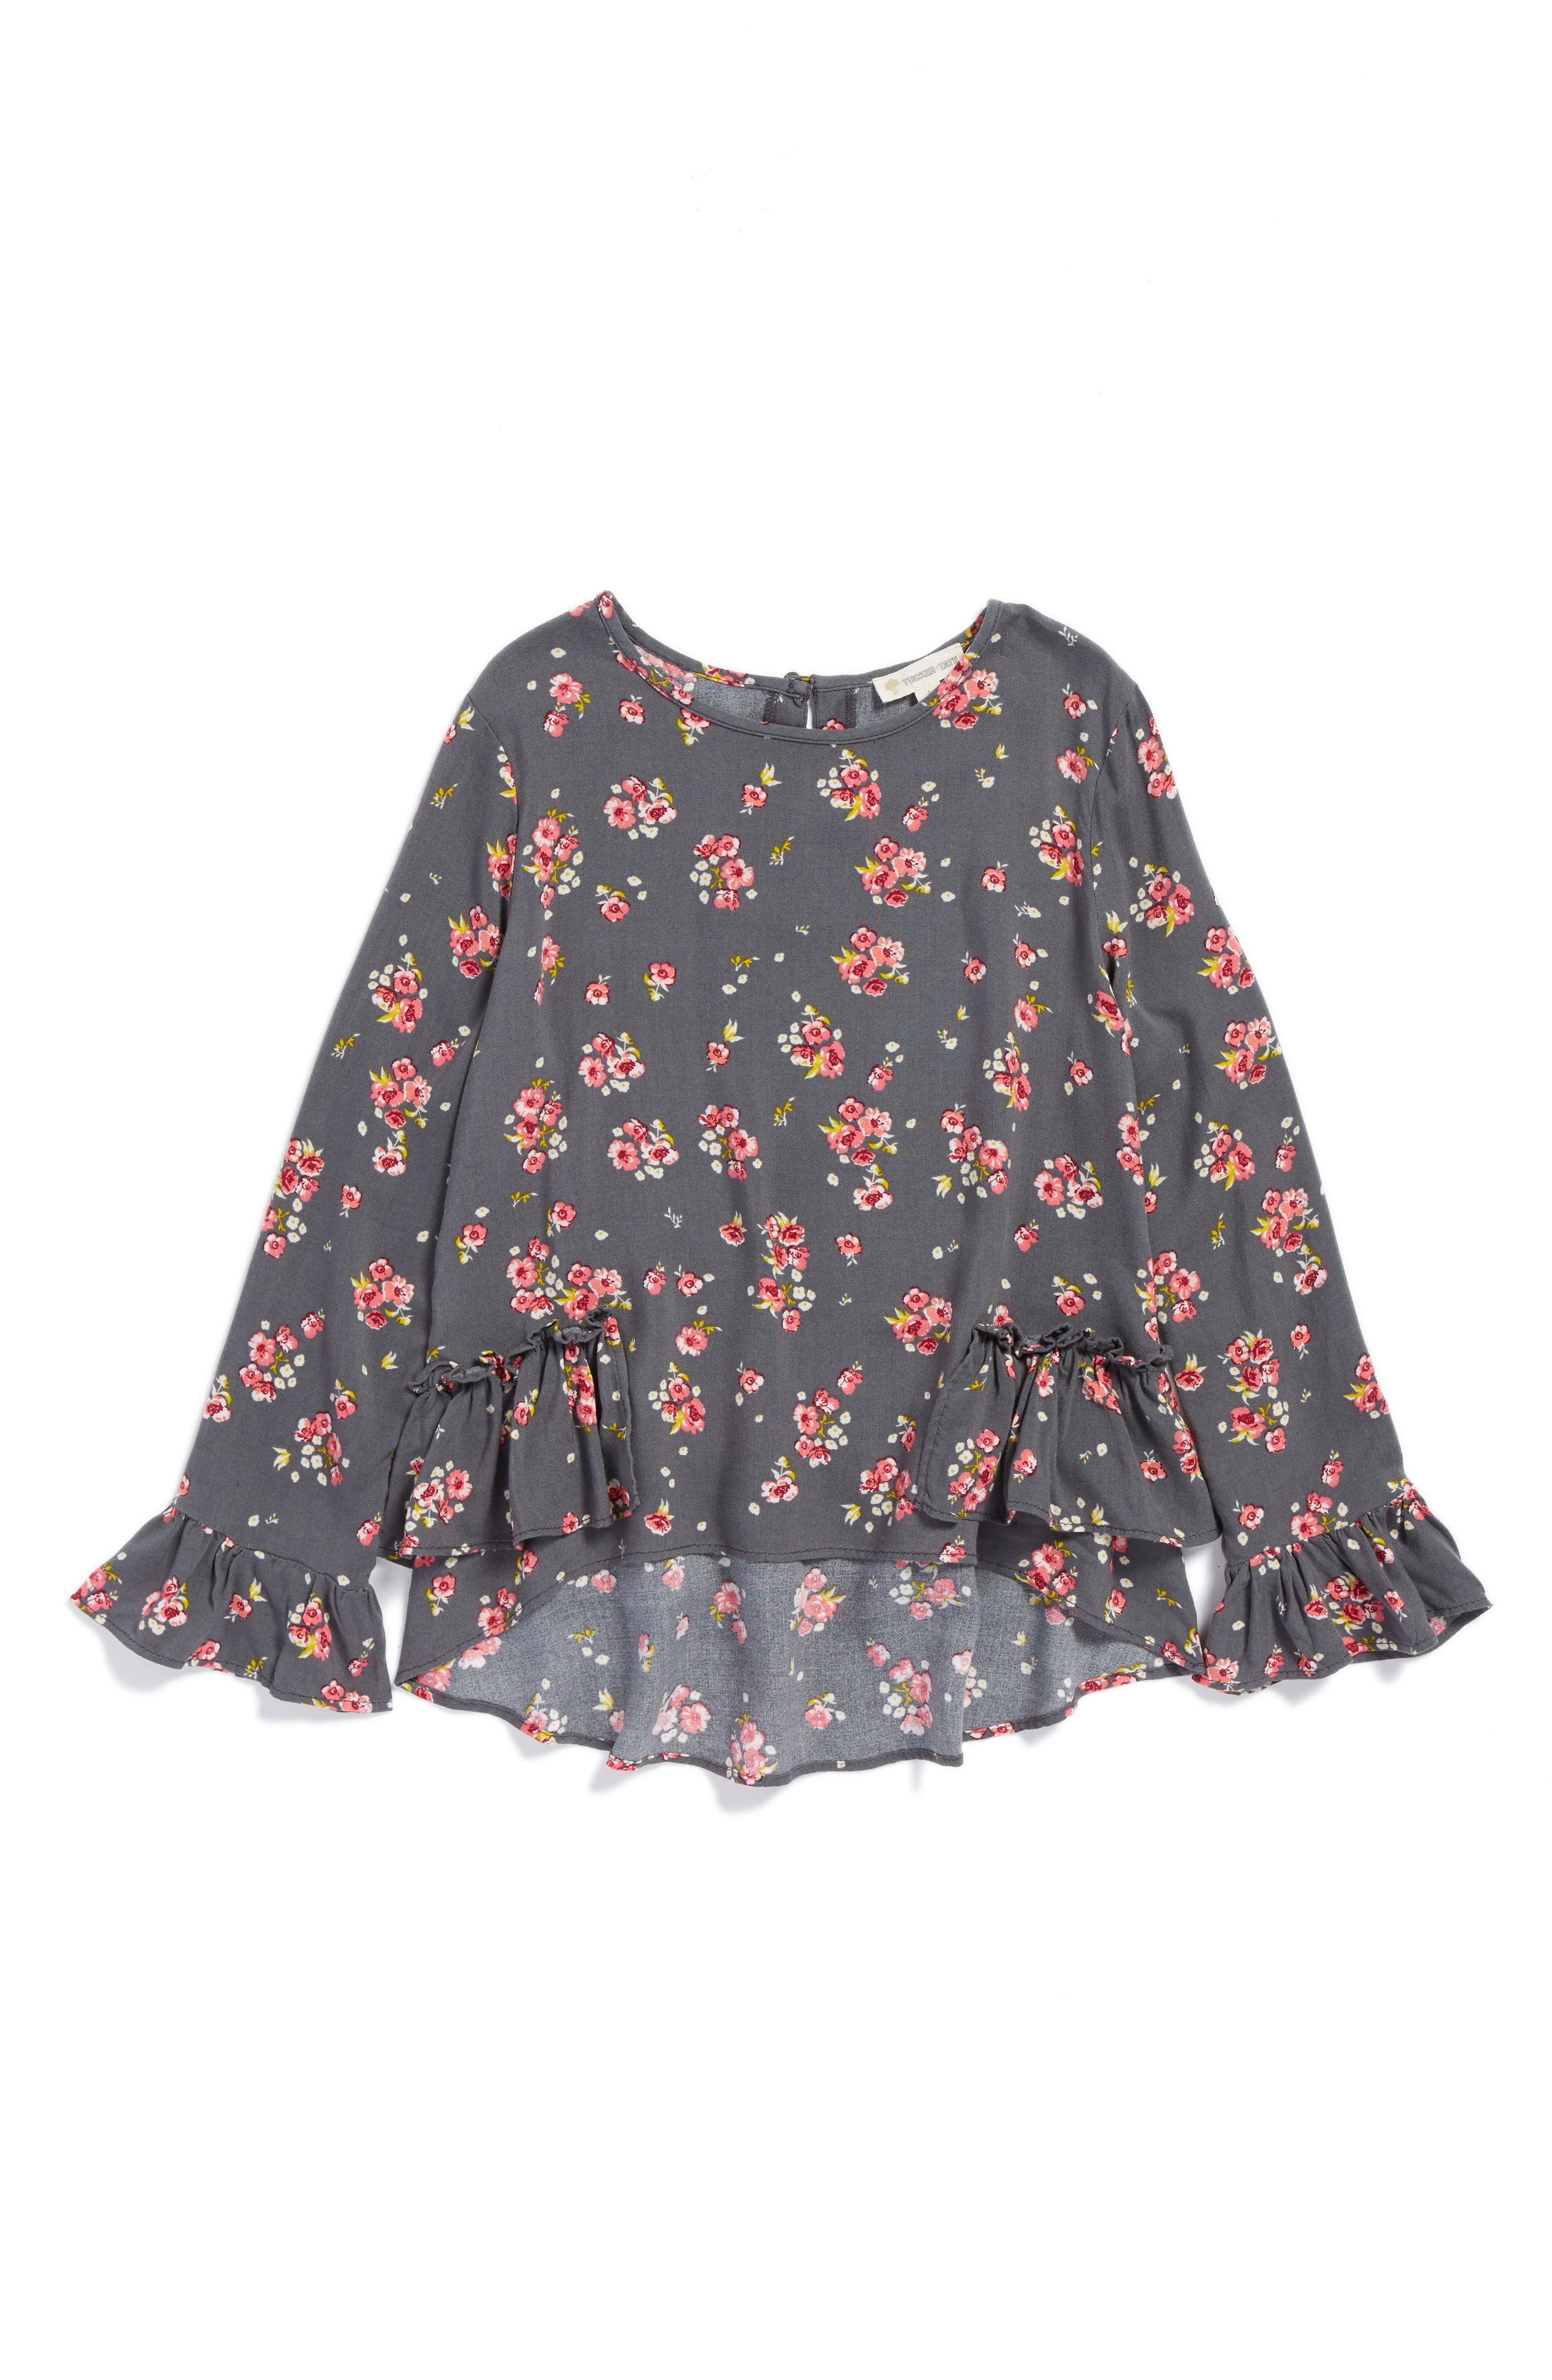 Main Image - Tucker + Tate Print Ruffle Top (Big Girls)